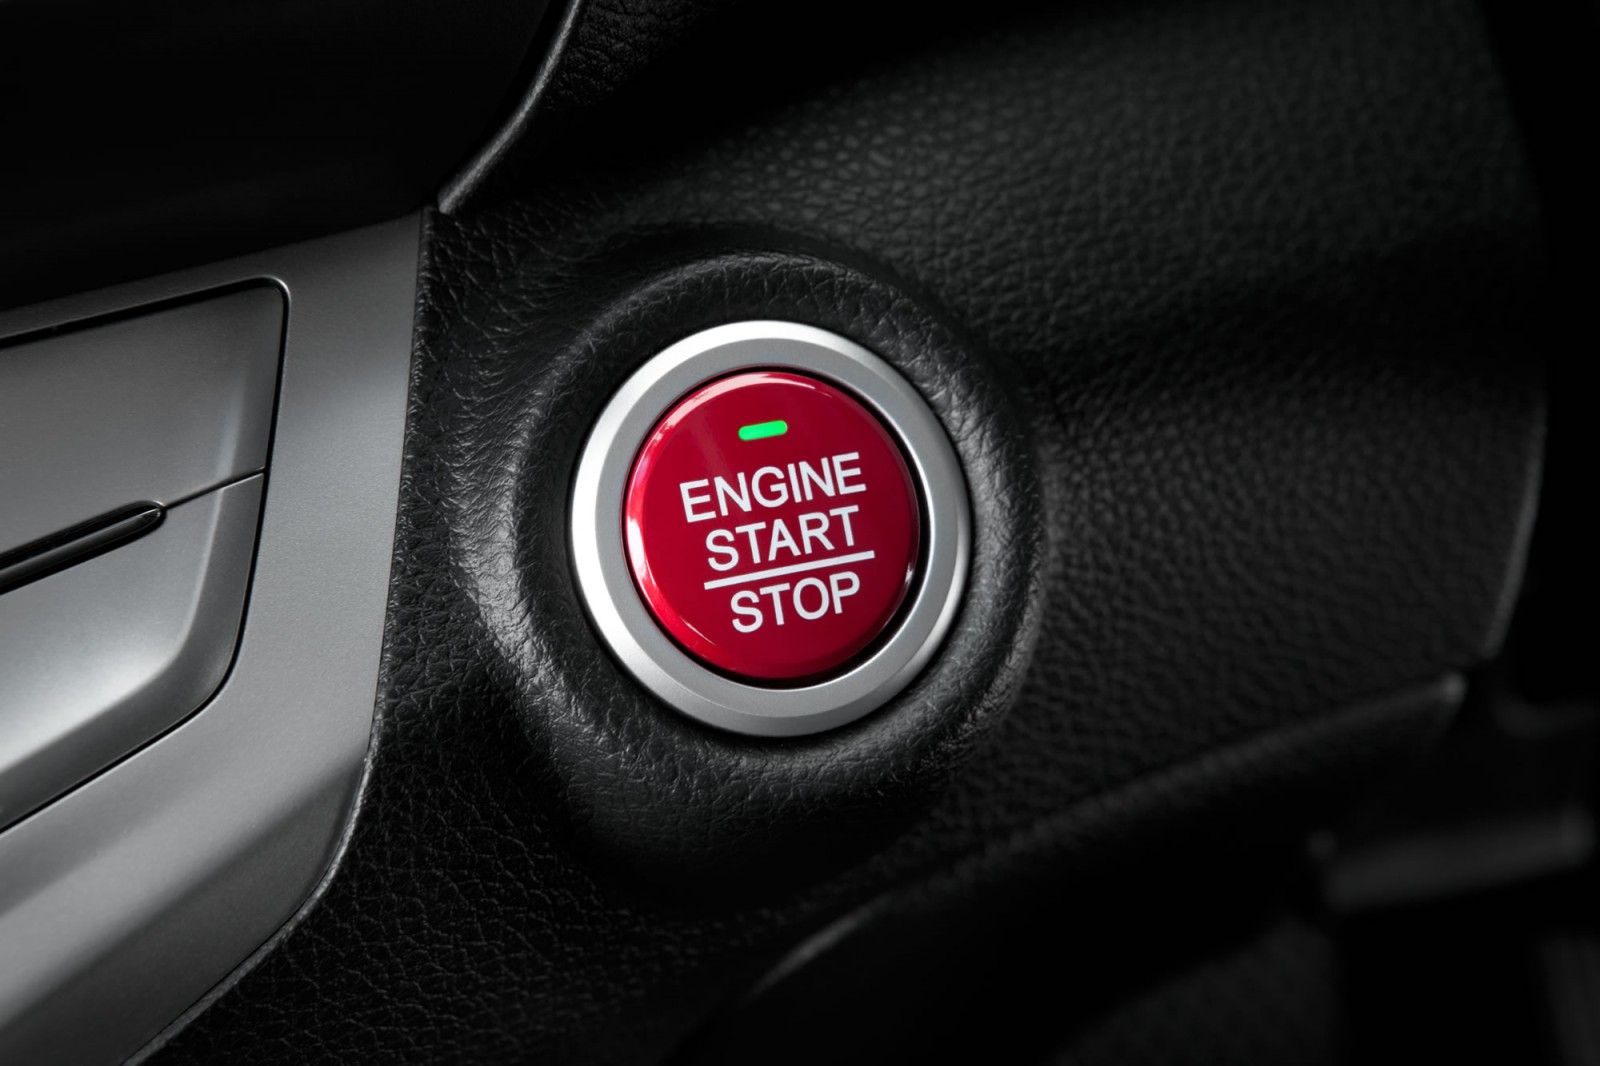 Honda engine start button